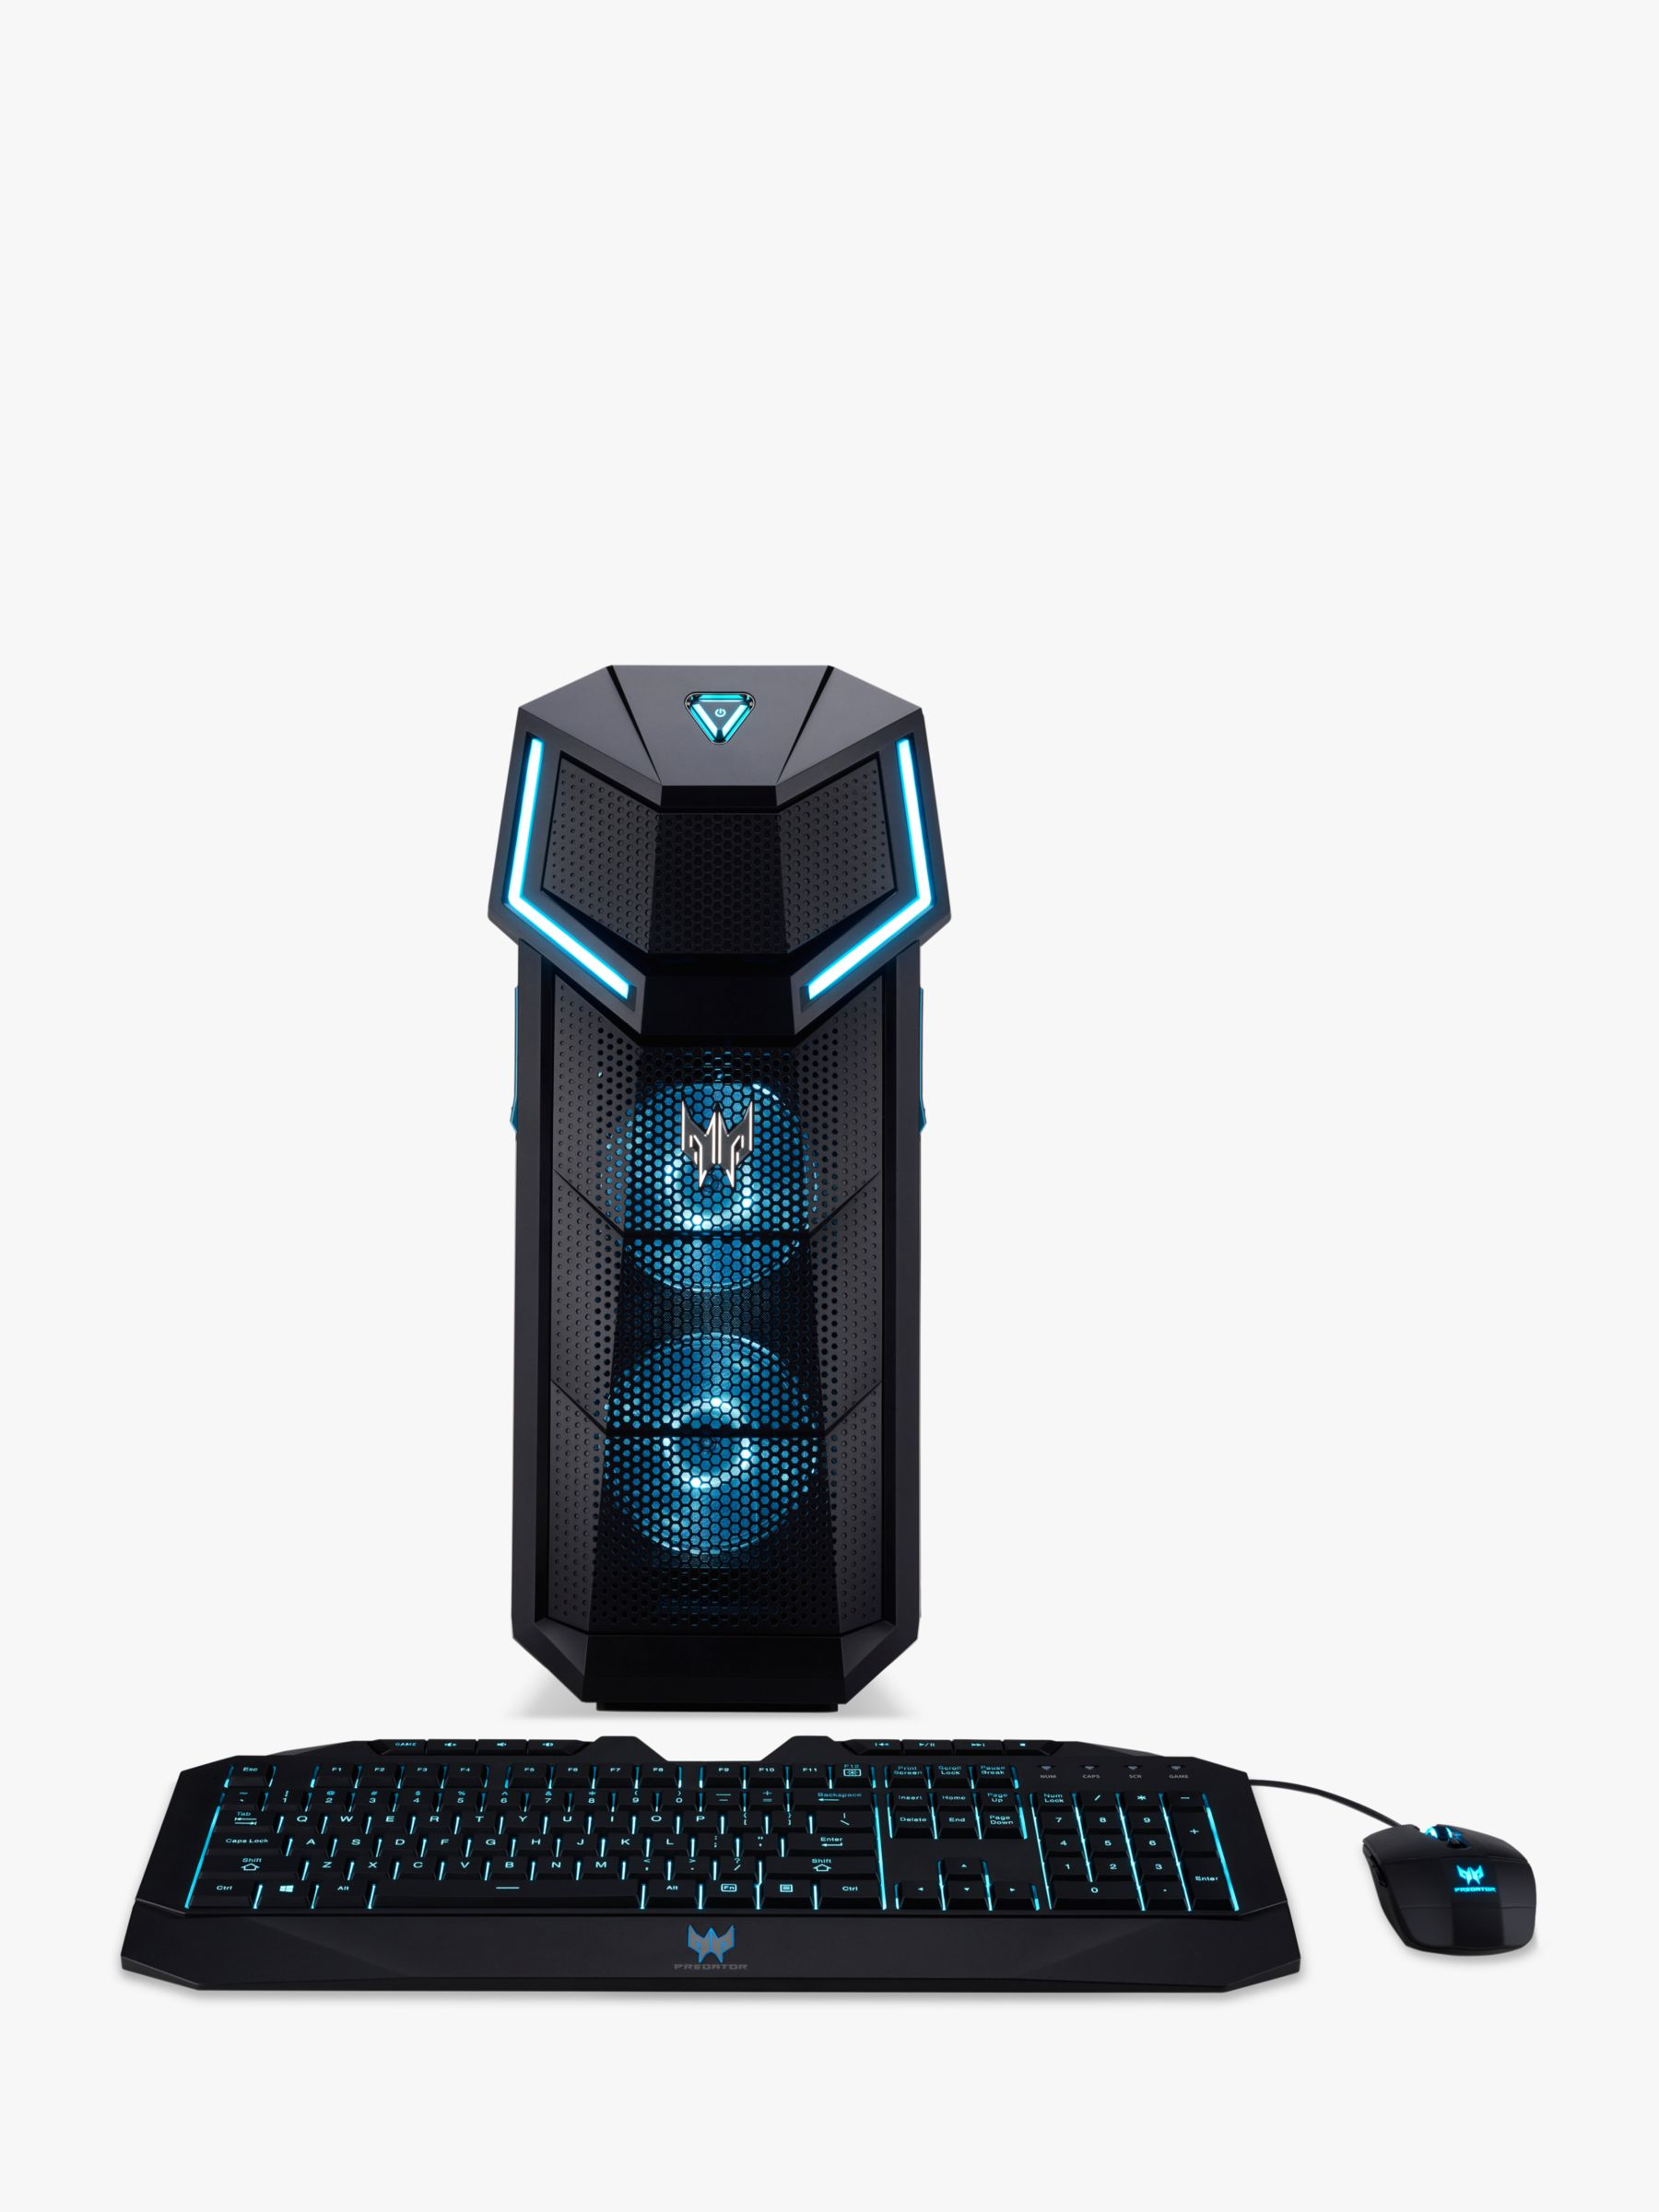 Acer Acer Predator Orion 5000 Gaming PC, Intel Core i7 Processor, 16GB RAM + 16GB Intel Optane, 2TB HDD + 256GB SSD, GeForce RTX 2080, Black